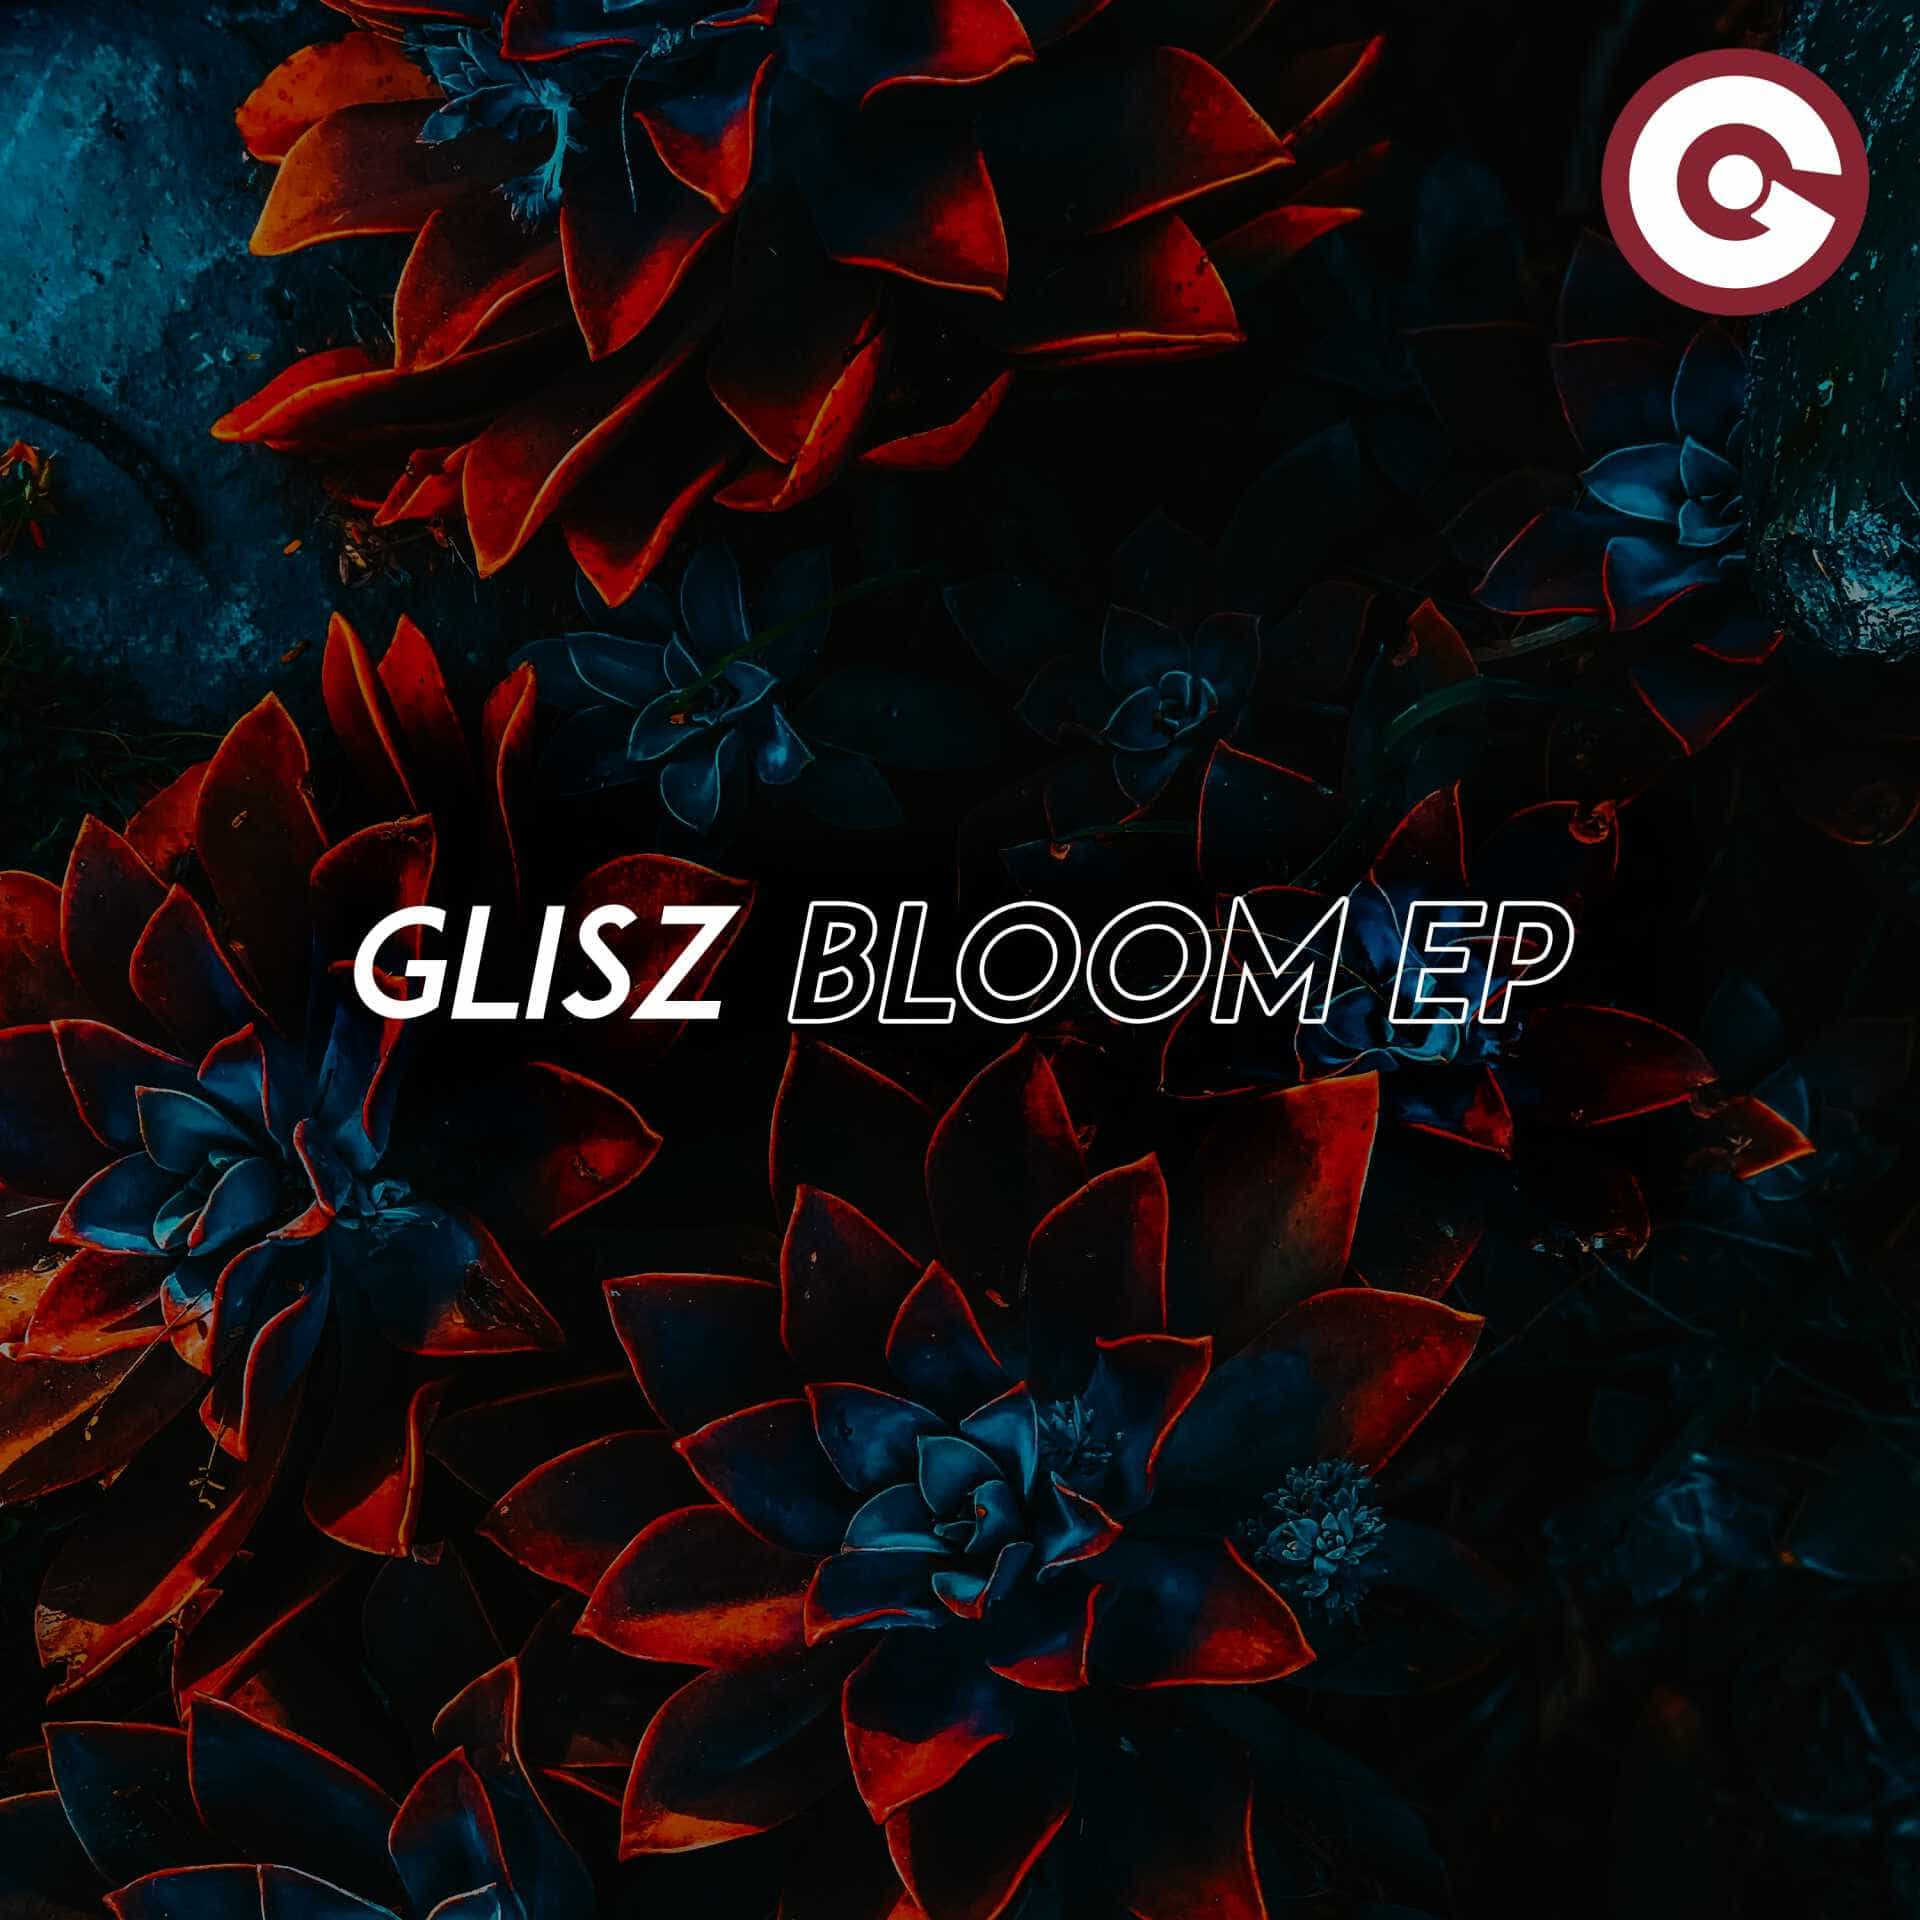 The artwork for the EP Bloom by Glisz